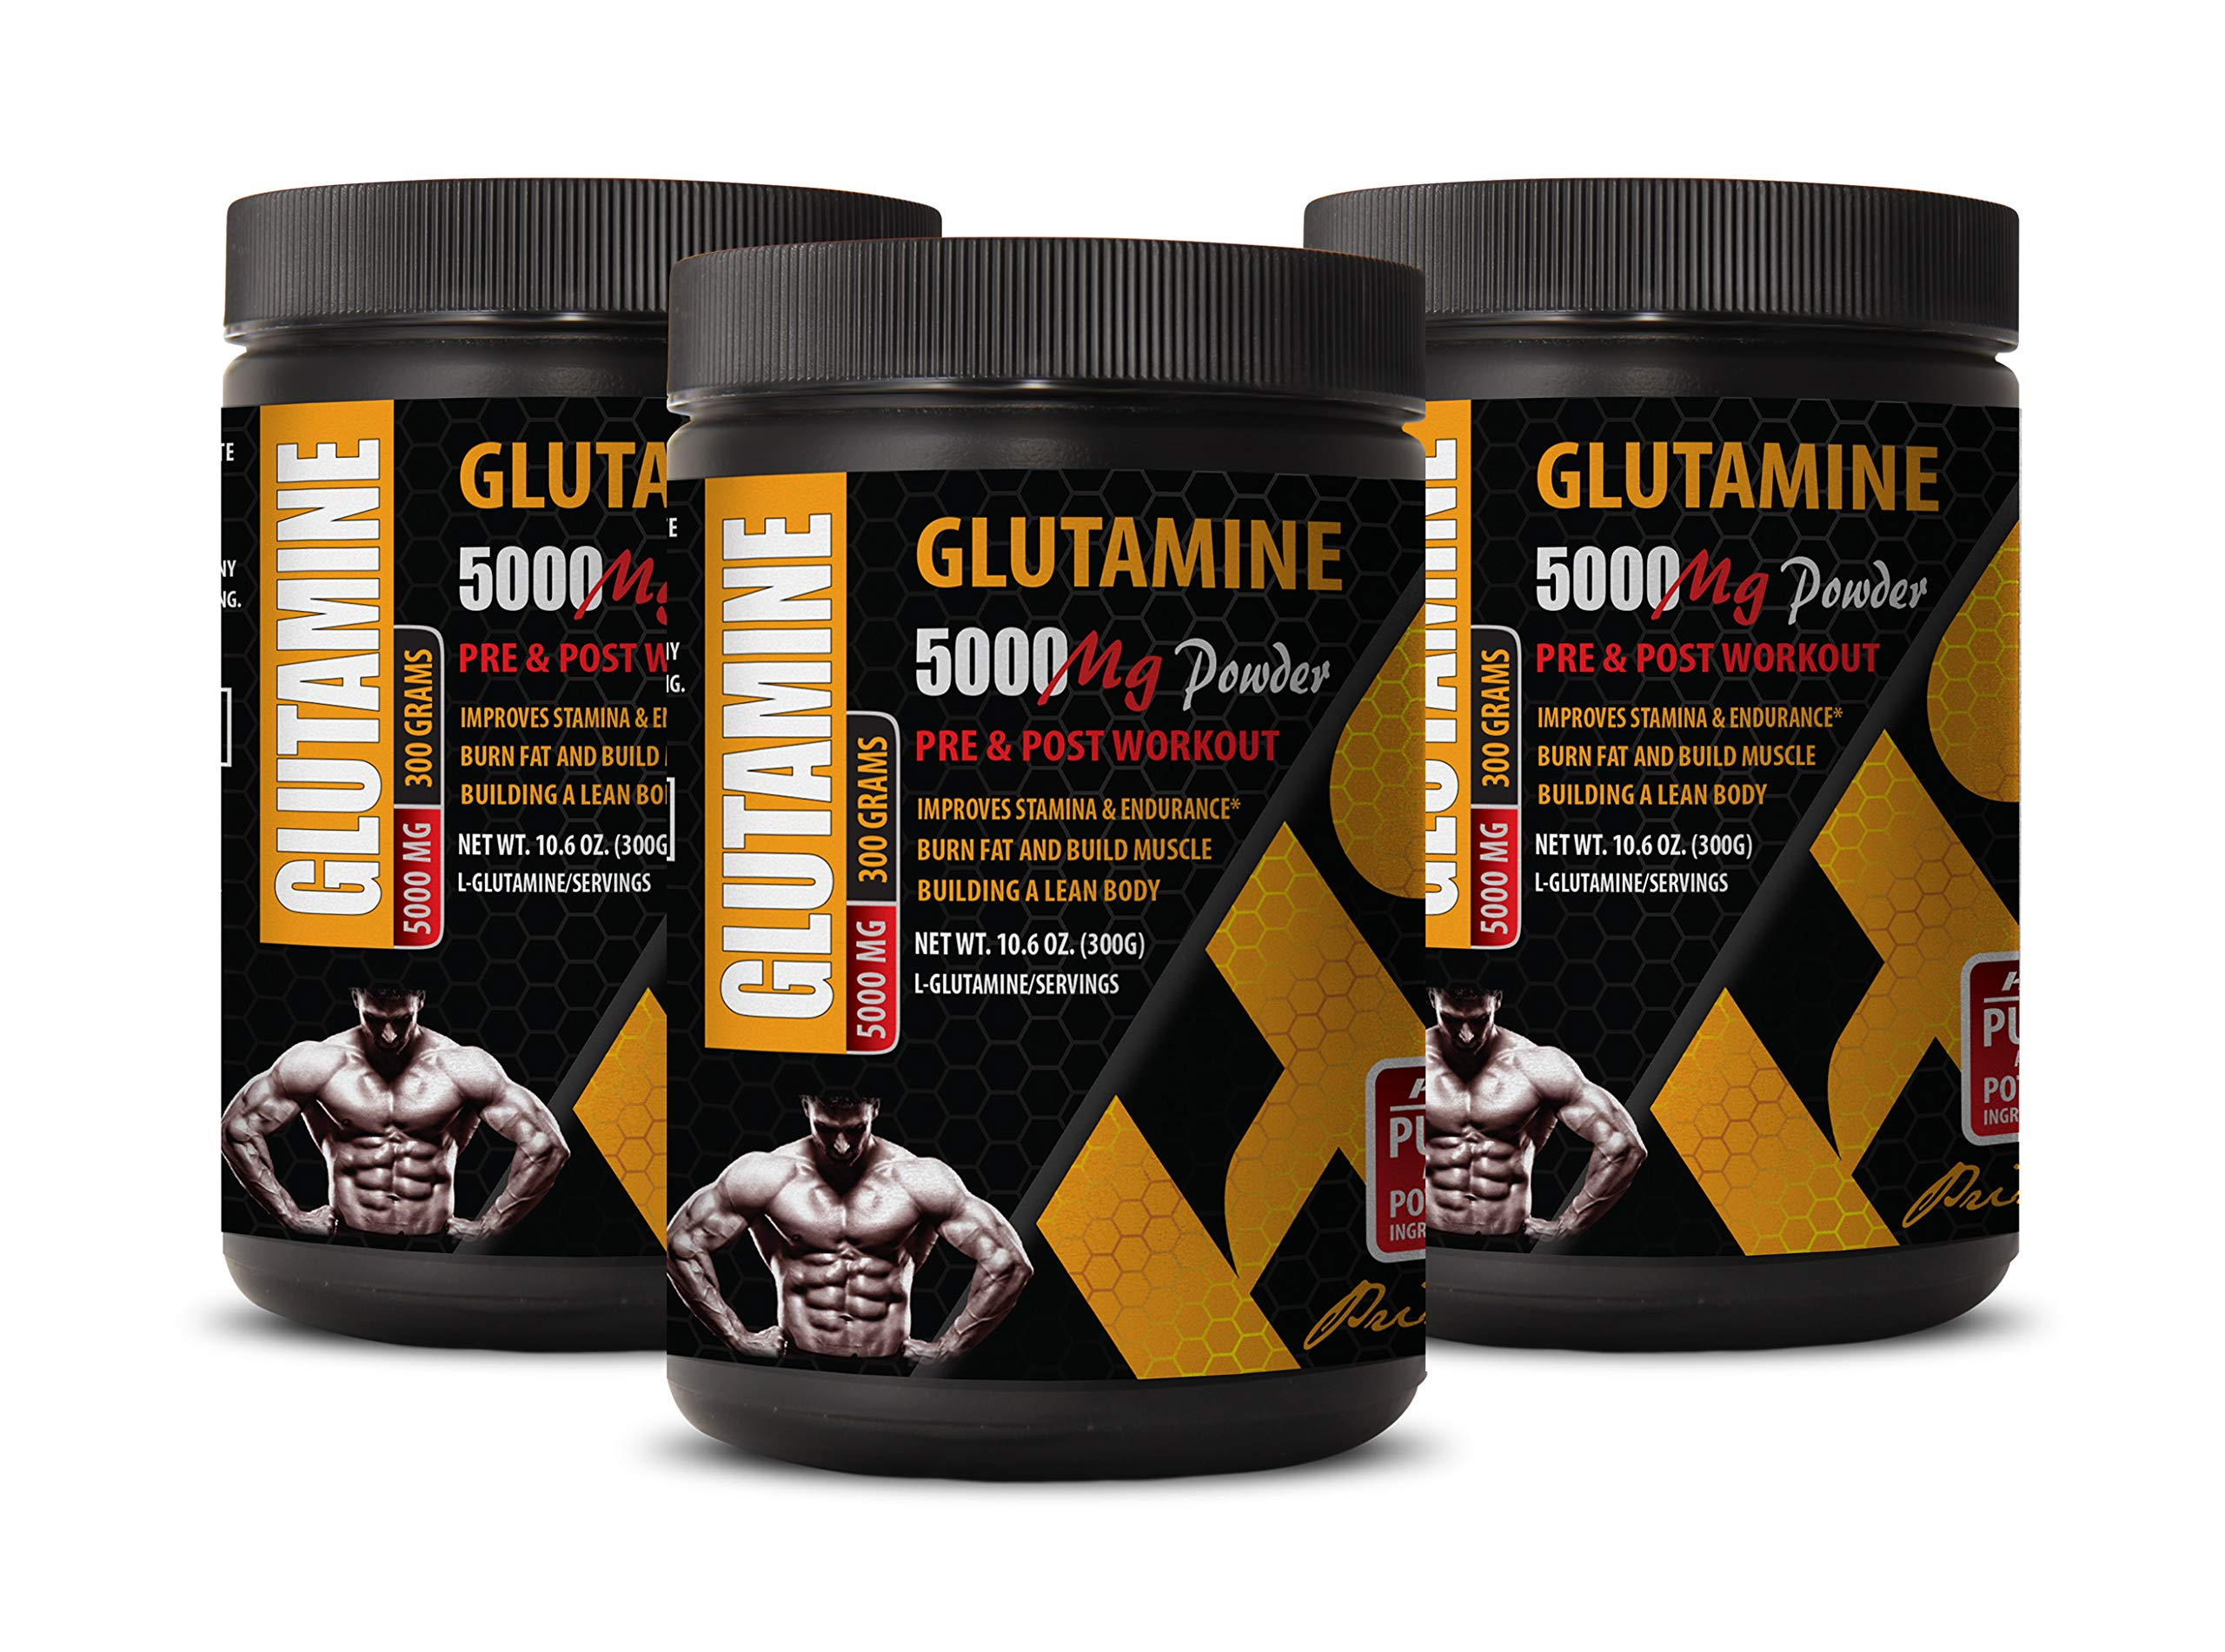 Muscle Pump pre Workout - GLUTAMINE Powder 5000MG - PRE and Post Workout - glutamine Supplements Powder - 3 Cans 900 Grams by HS PRIME